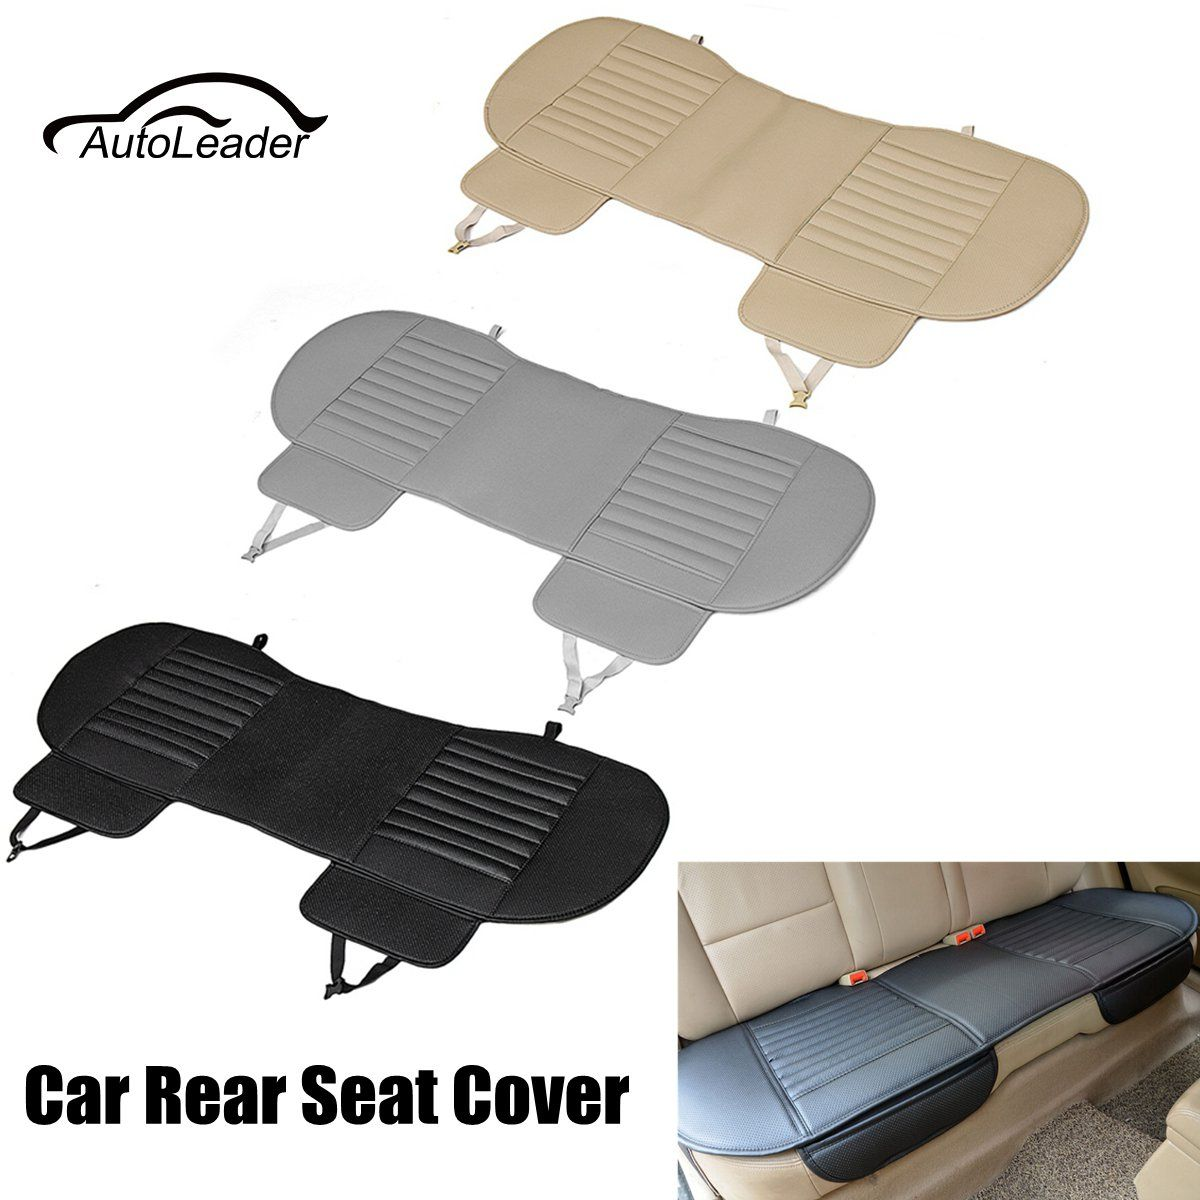 Universal Bamboo Charcoal Cushion Pad PU Leather Car Rear Seat Cover Four Seasons Breathable Therapy Mat Black Grey Beige